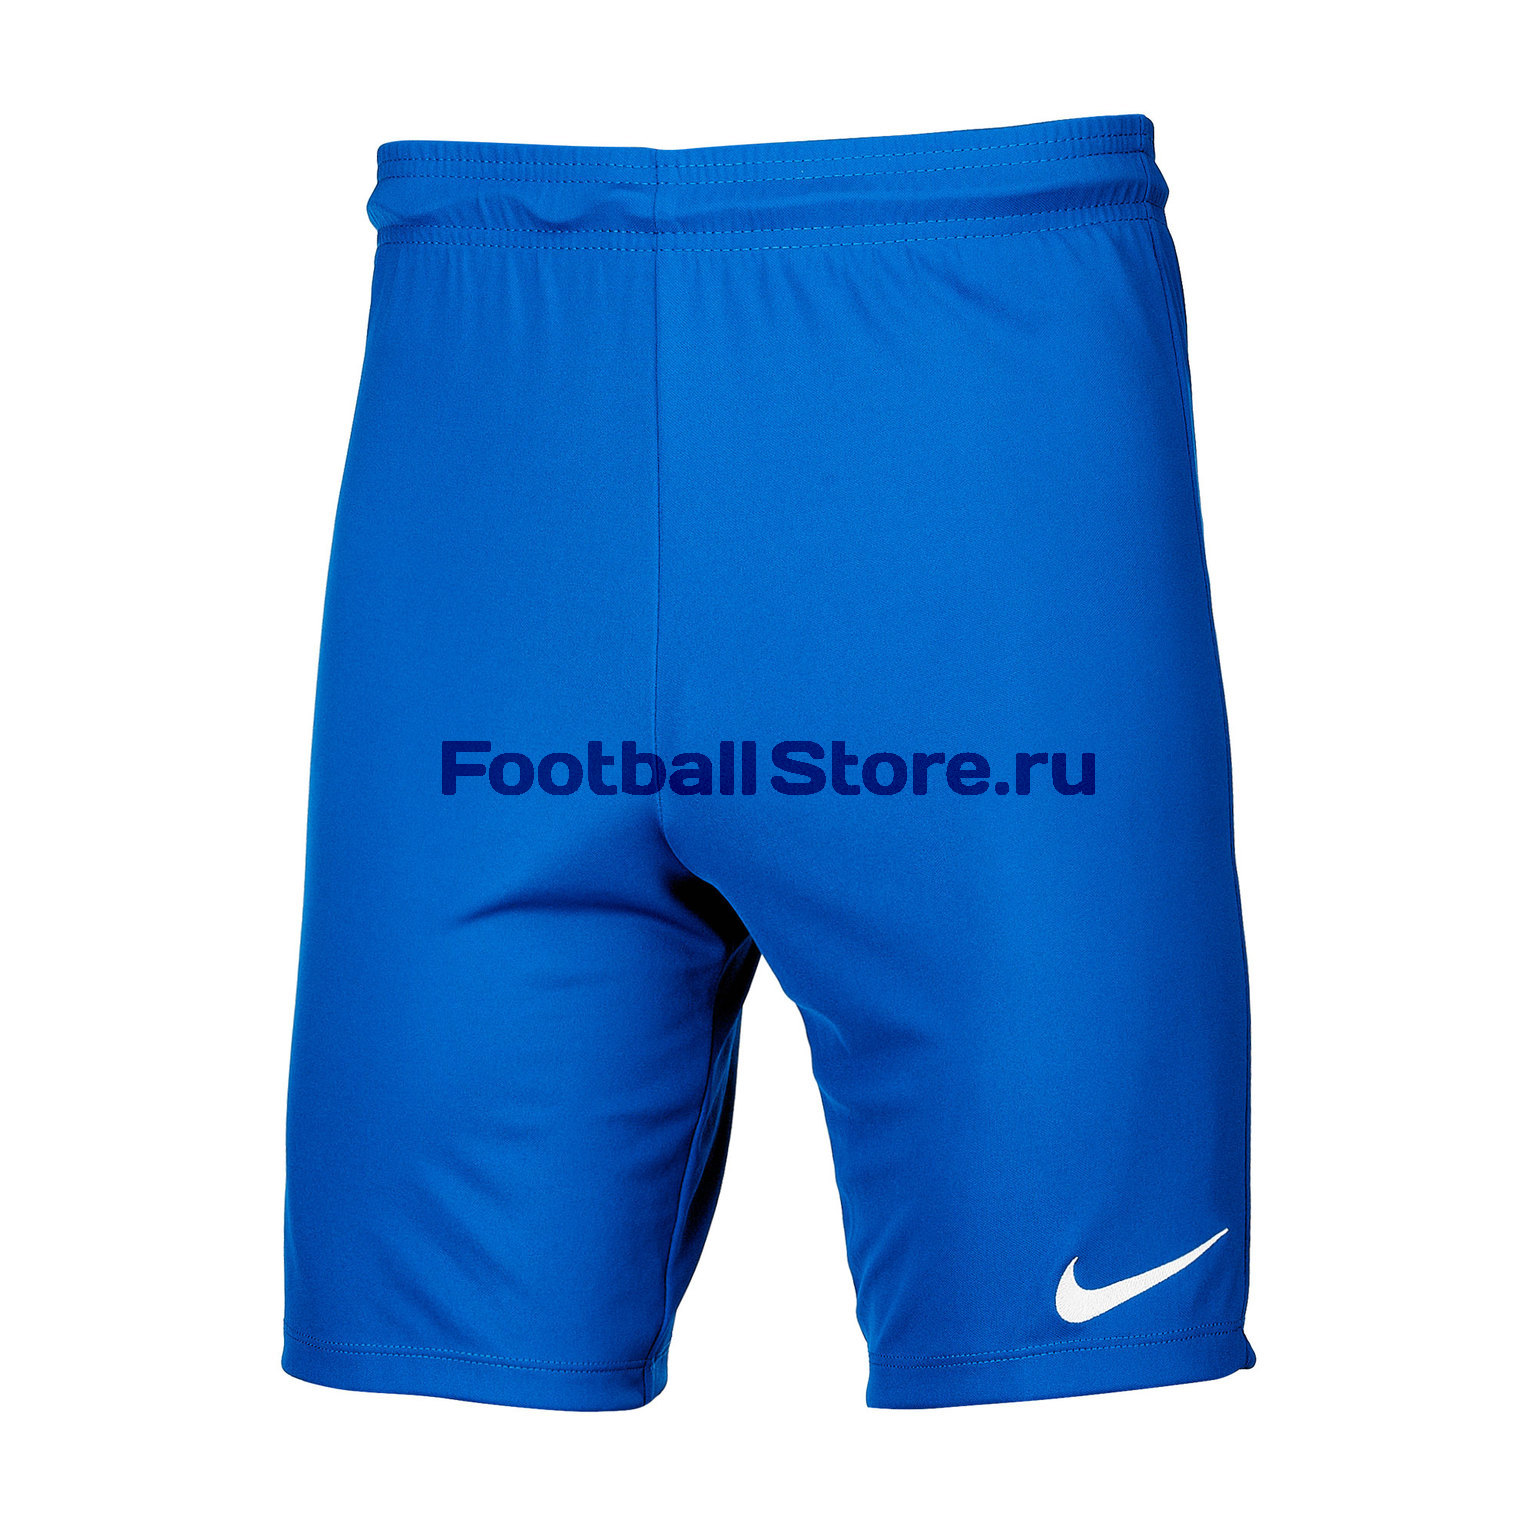 Шорты Nike Park II KNIT Short NB 725887-463 шорты nike шорты игровые nike park ii knit short wb 725903 410